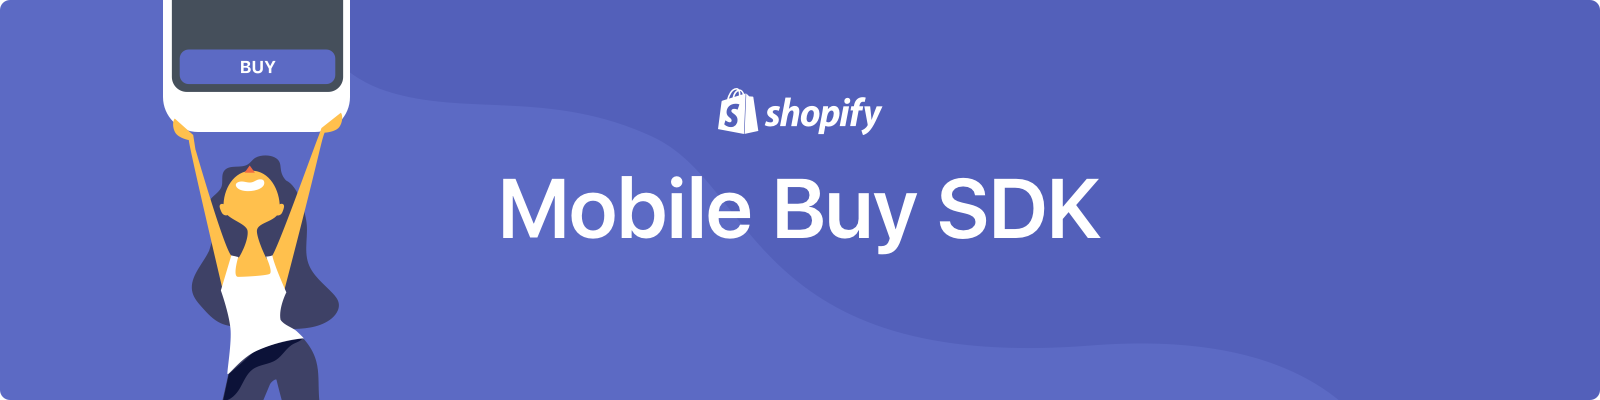 Mobile Buy SDK